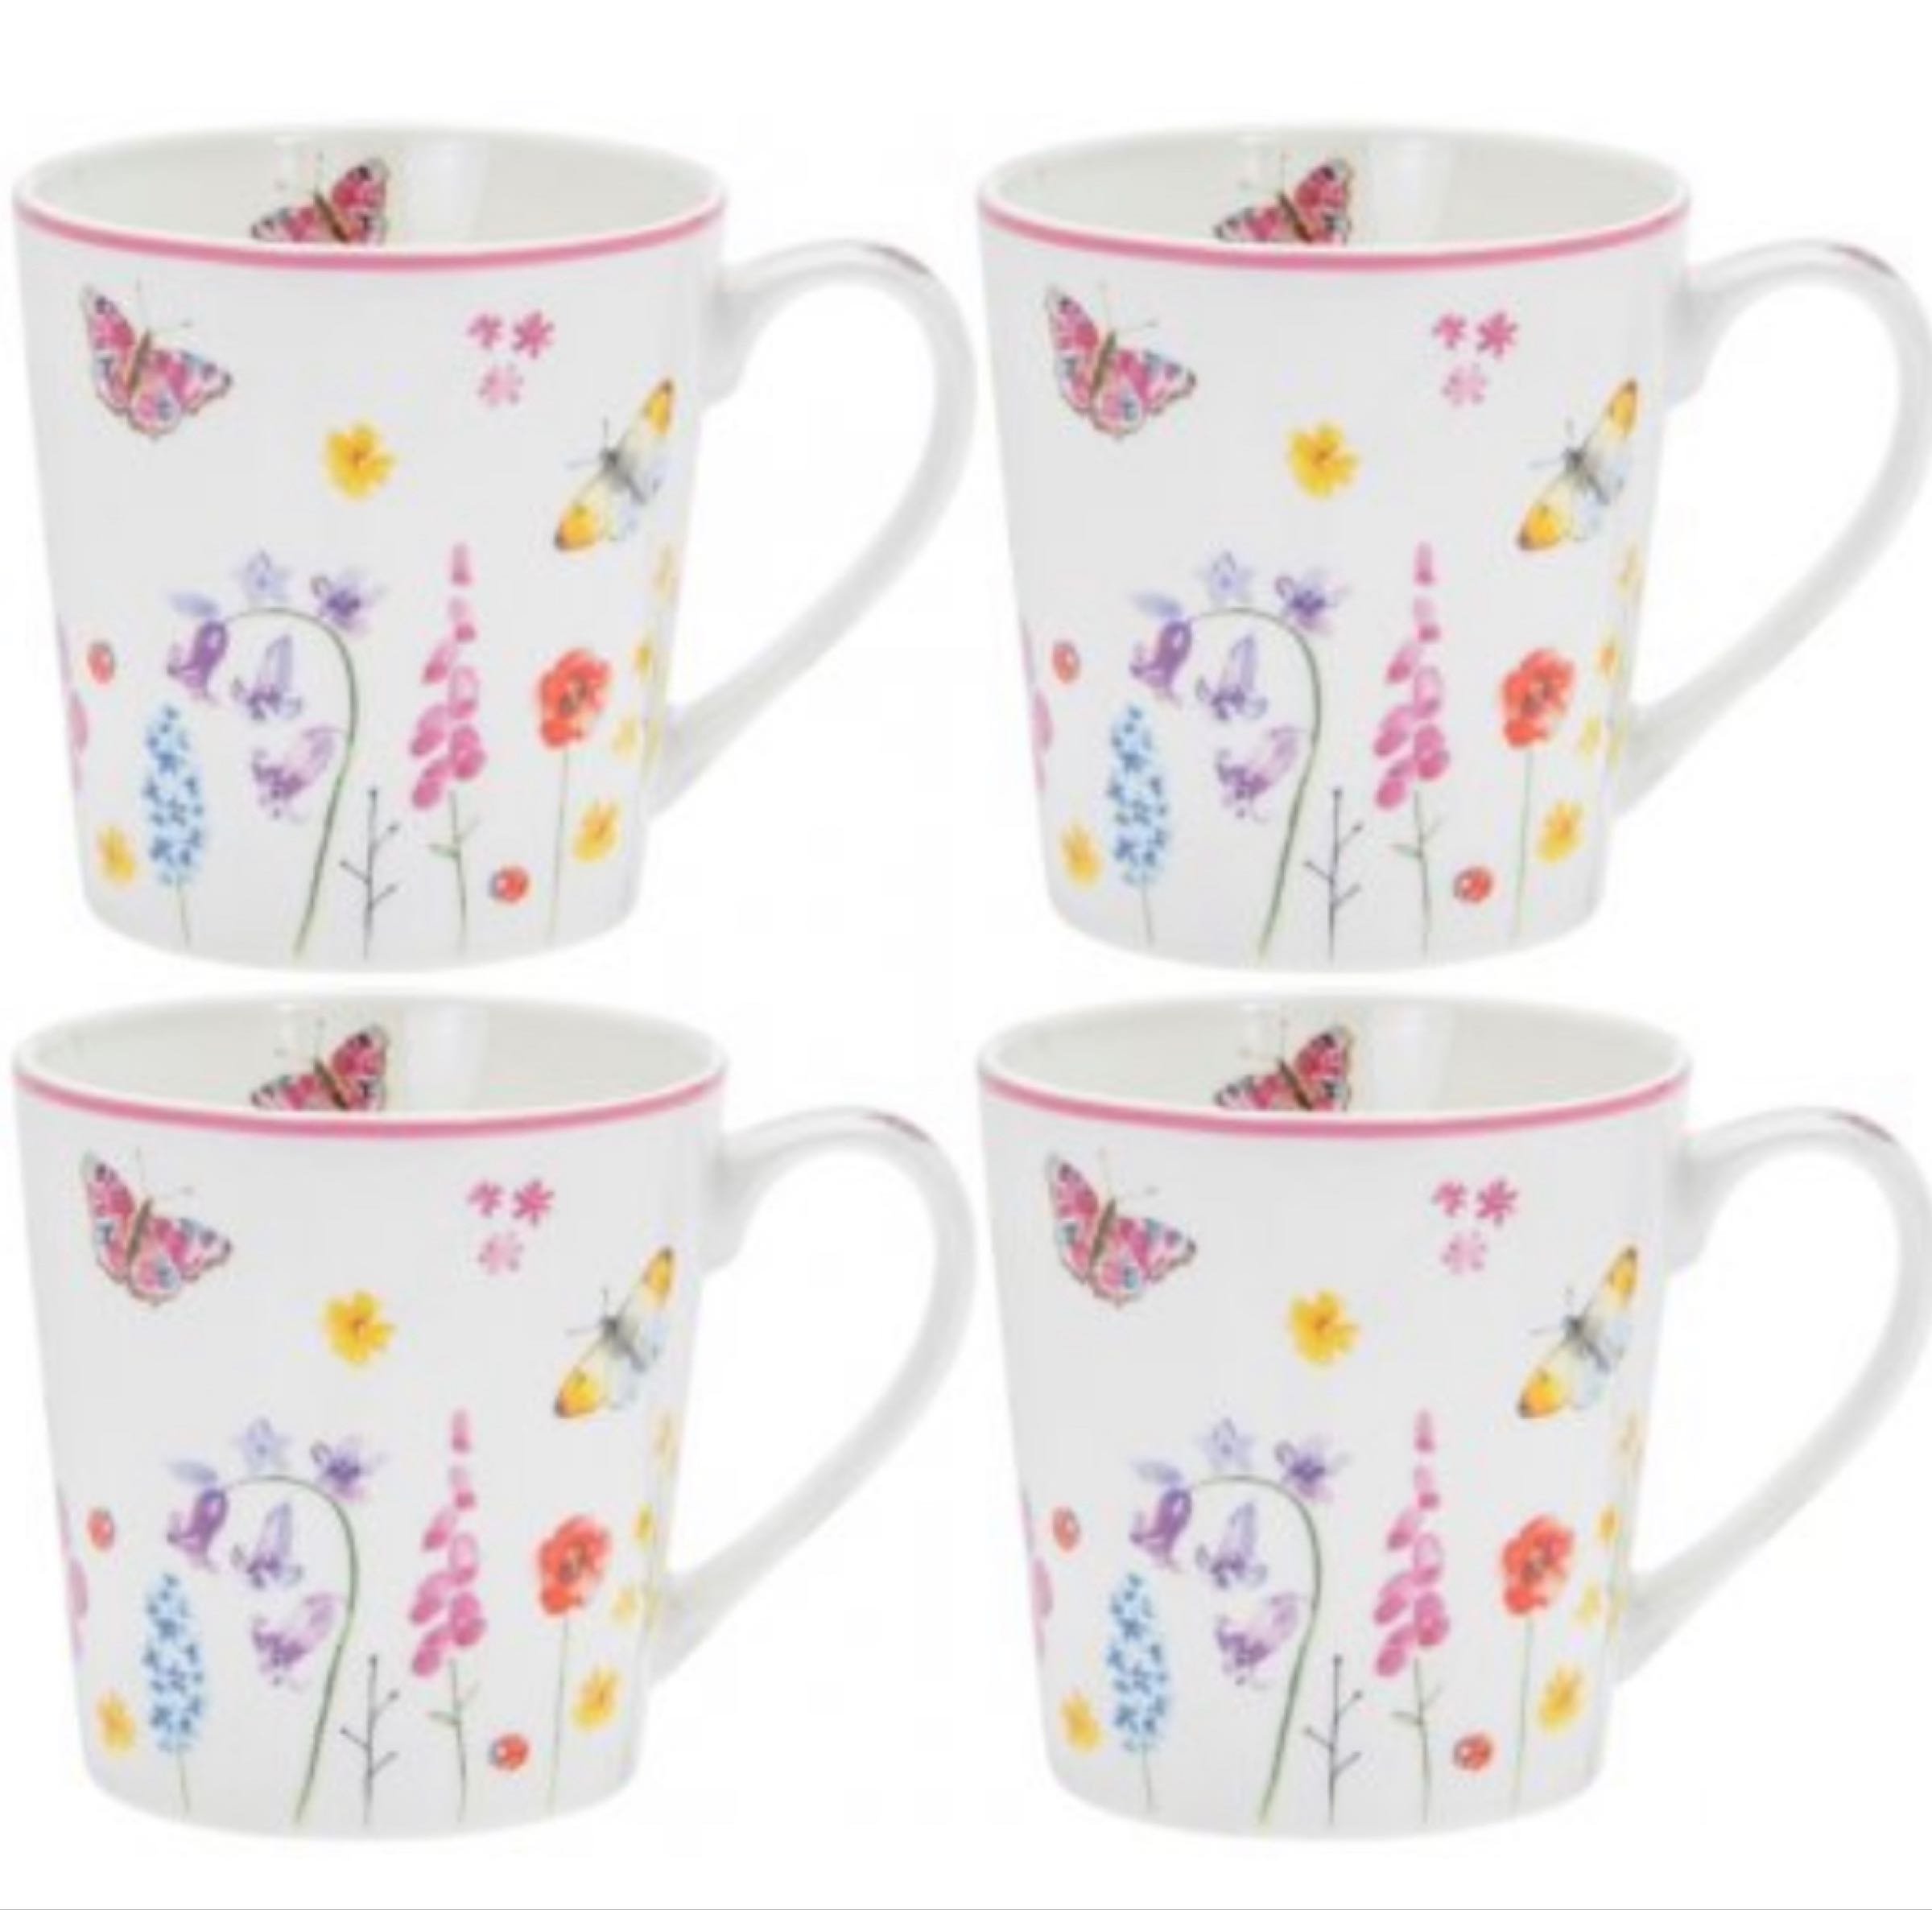 Butterfly Garden Fine China set of 4 mugs gift boxed